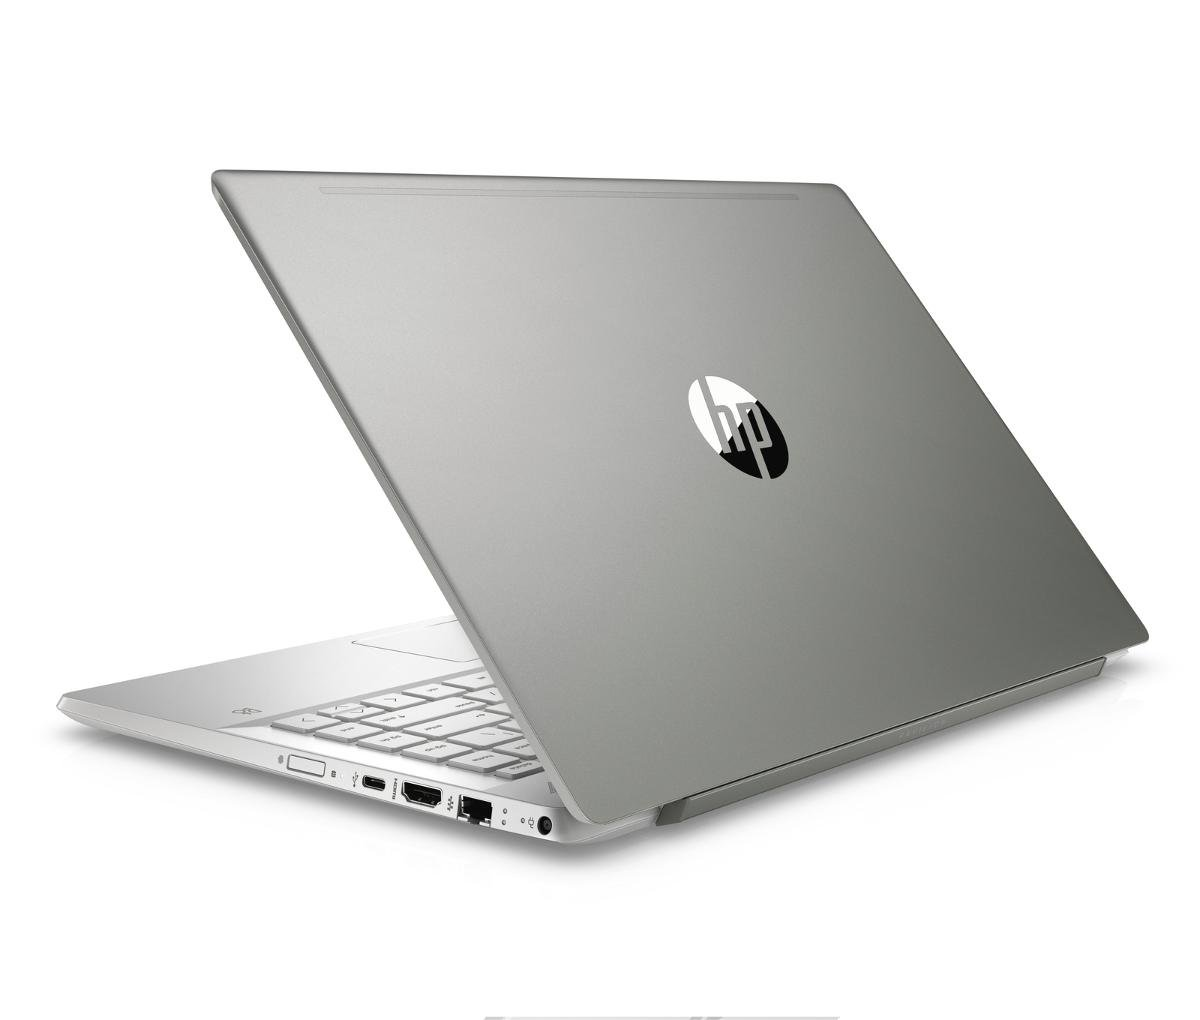 "Laptop HP Pavilion 14-ce1002nw 5QT40EA, i3-8130U, 4 GB RAM, 14"", 256 GB SSD, Windows 10 Home"